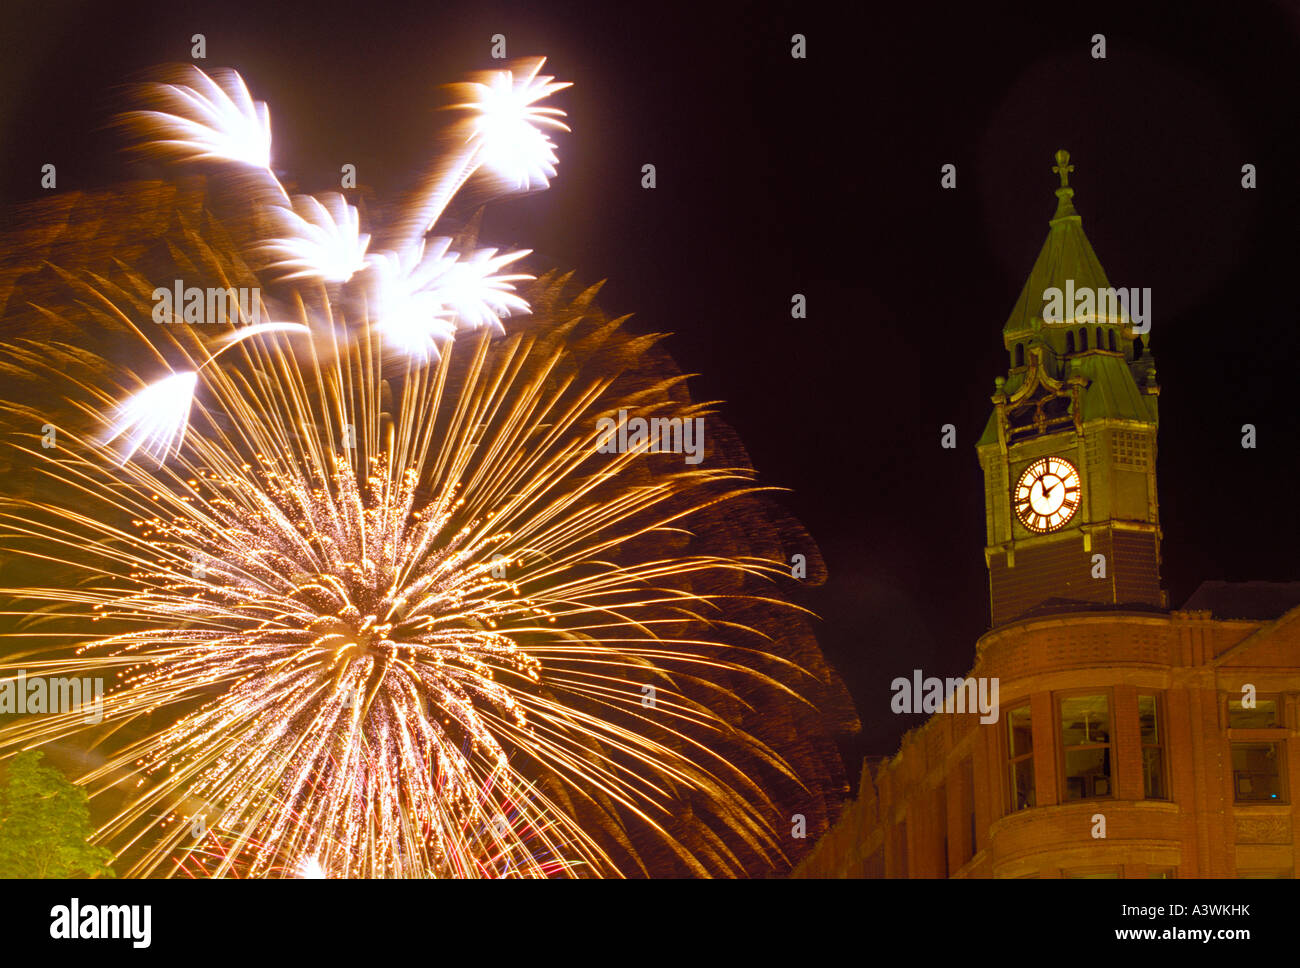 Fourth of July fireworks burst behind the historic Savings Bank building in Marquette Mich - Stock Image